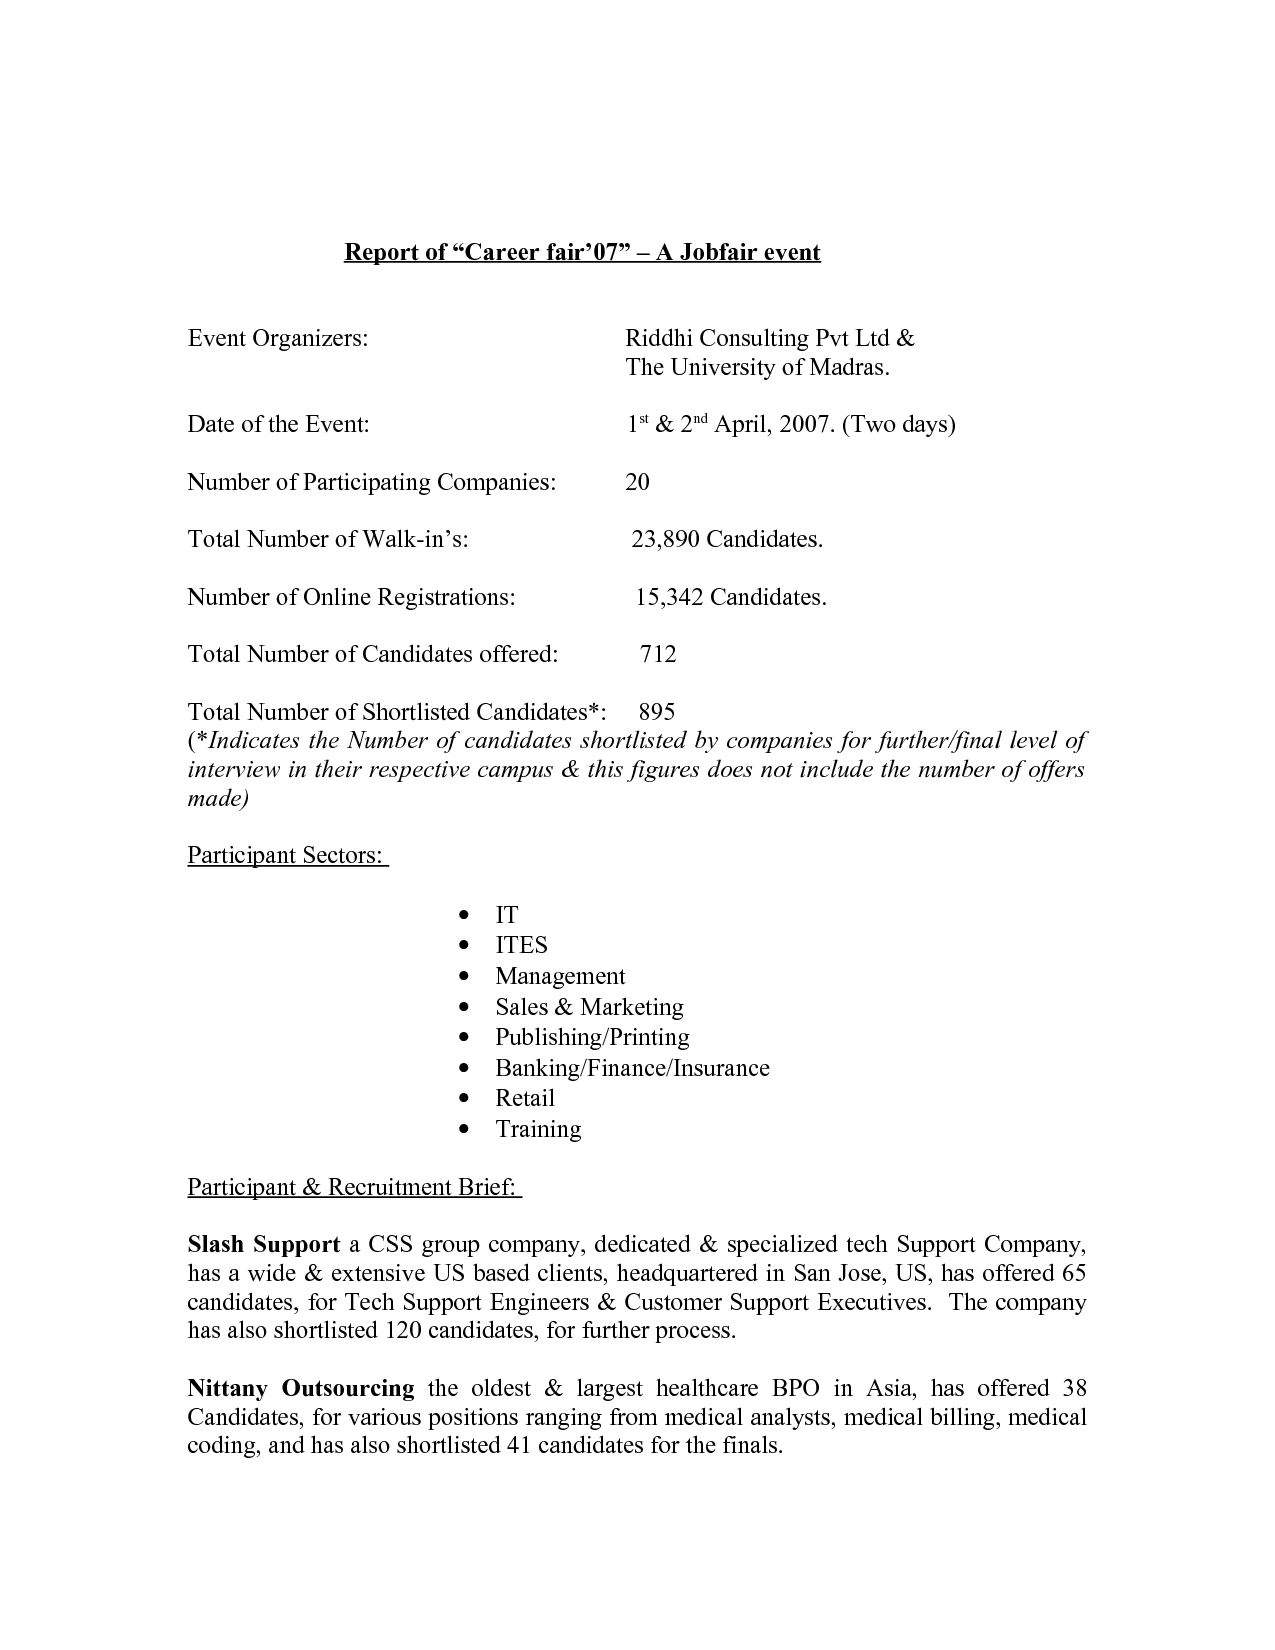 resume format for freshers free download resume format for freshers free download resume format for freshers free download in ms word resume format for